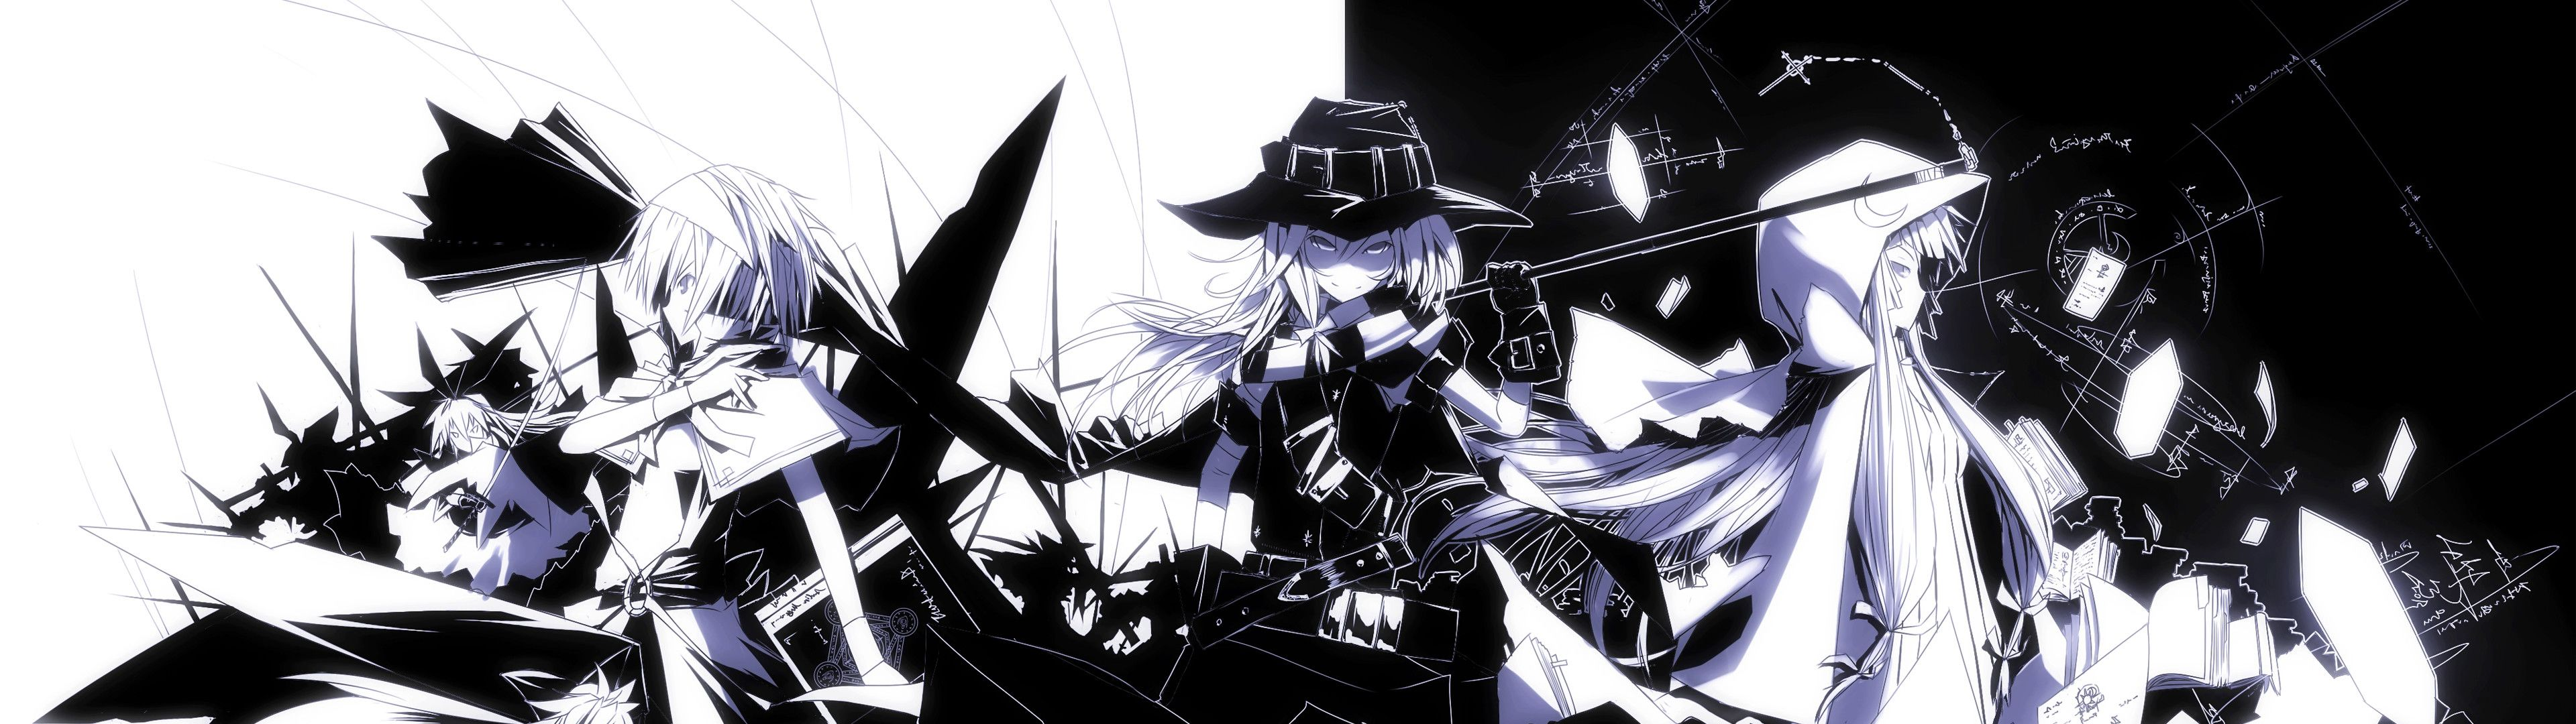 3840x1080 Anime Wallpaper 3840x1080 (72+ images)